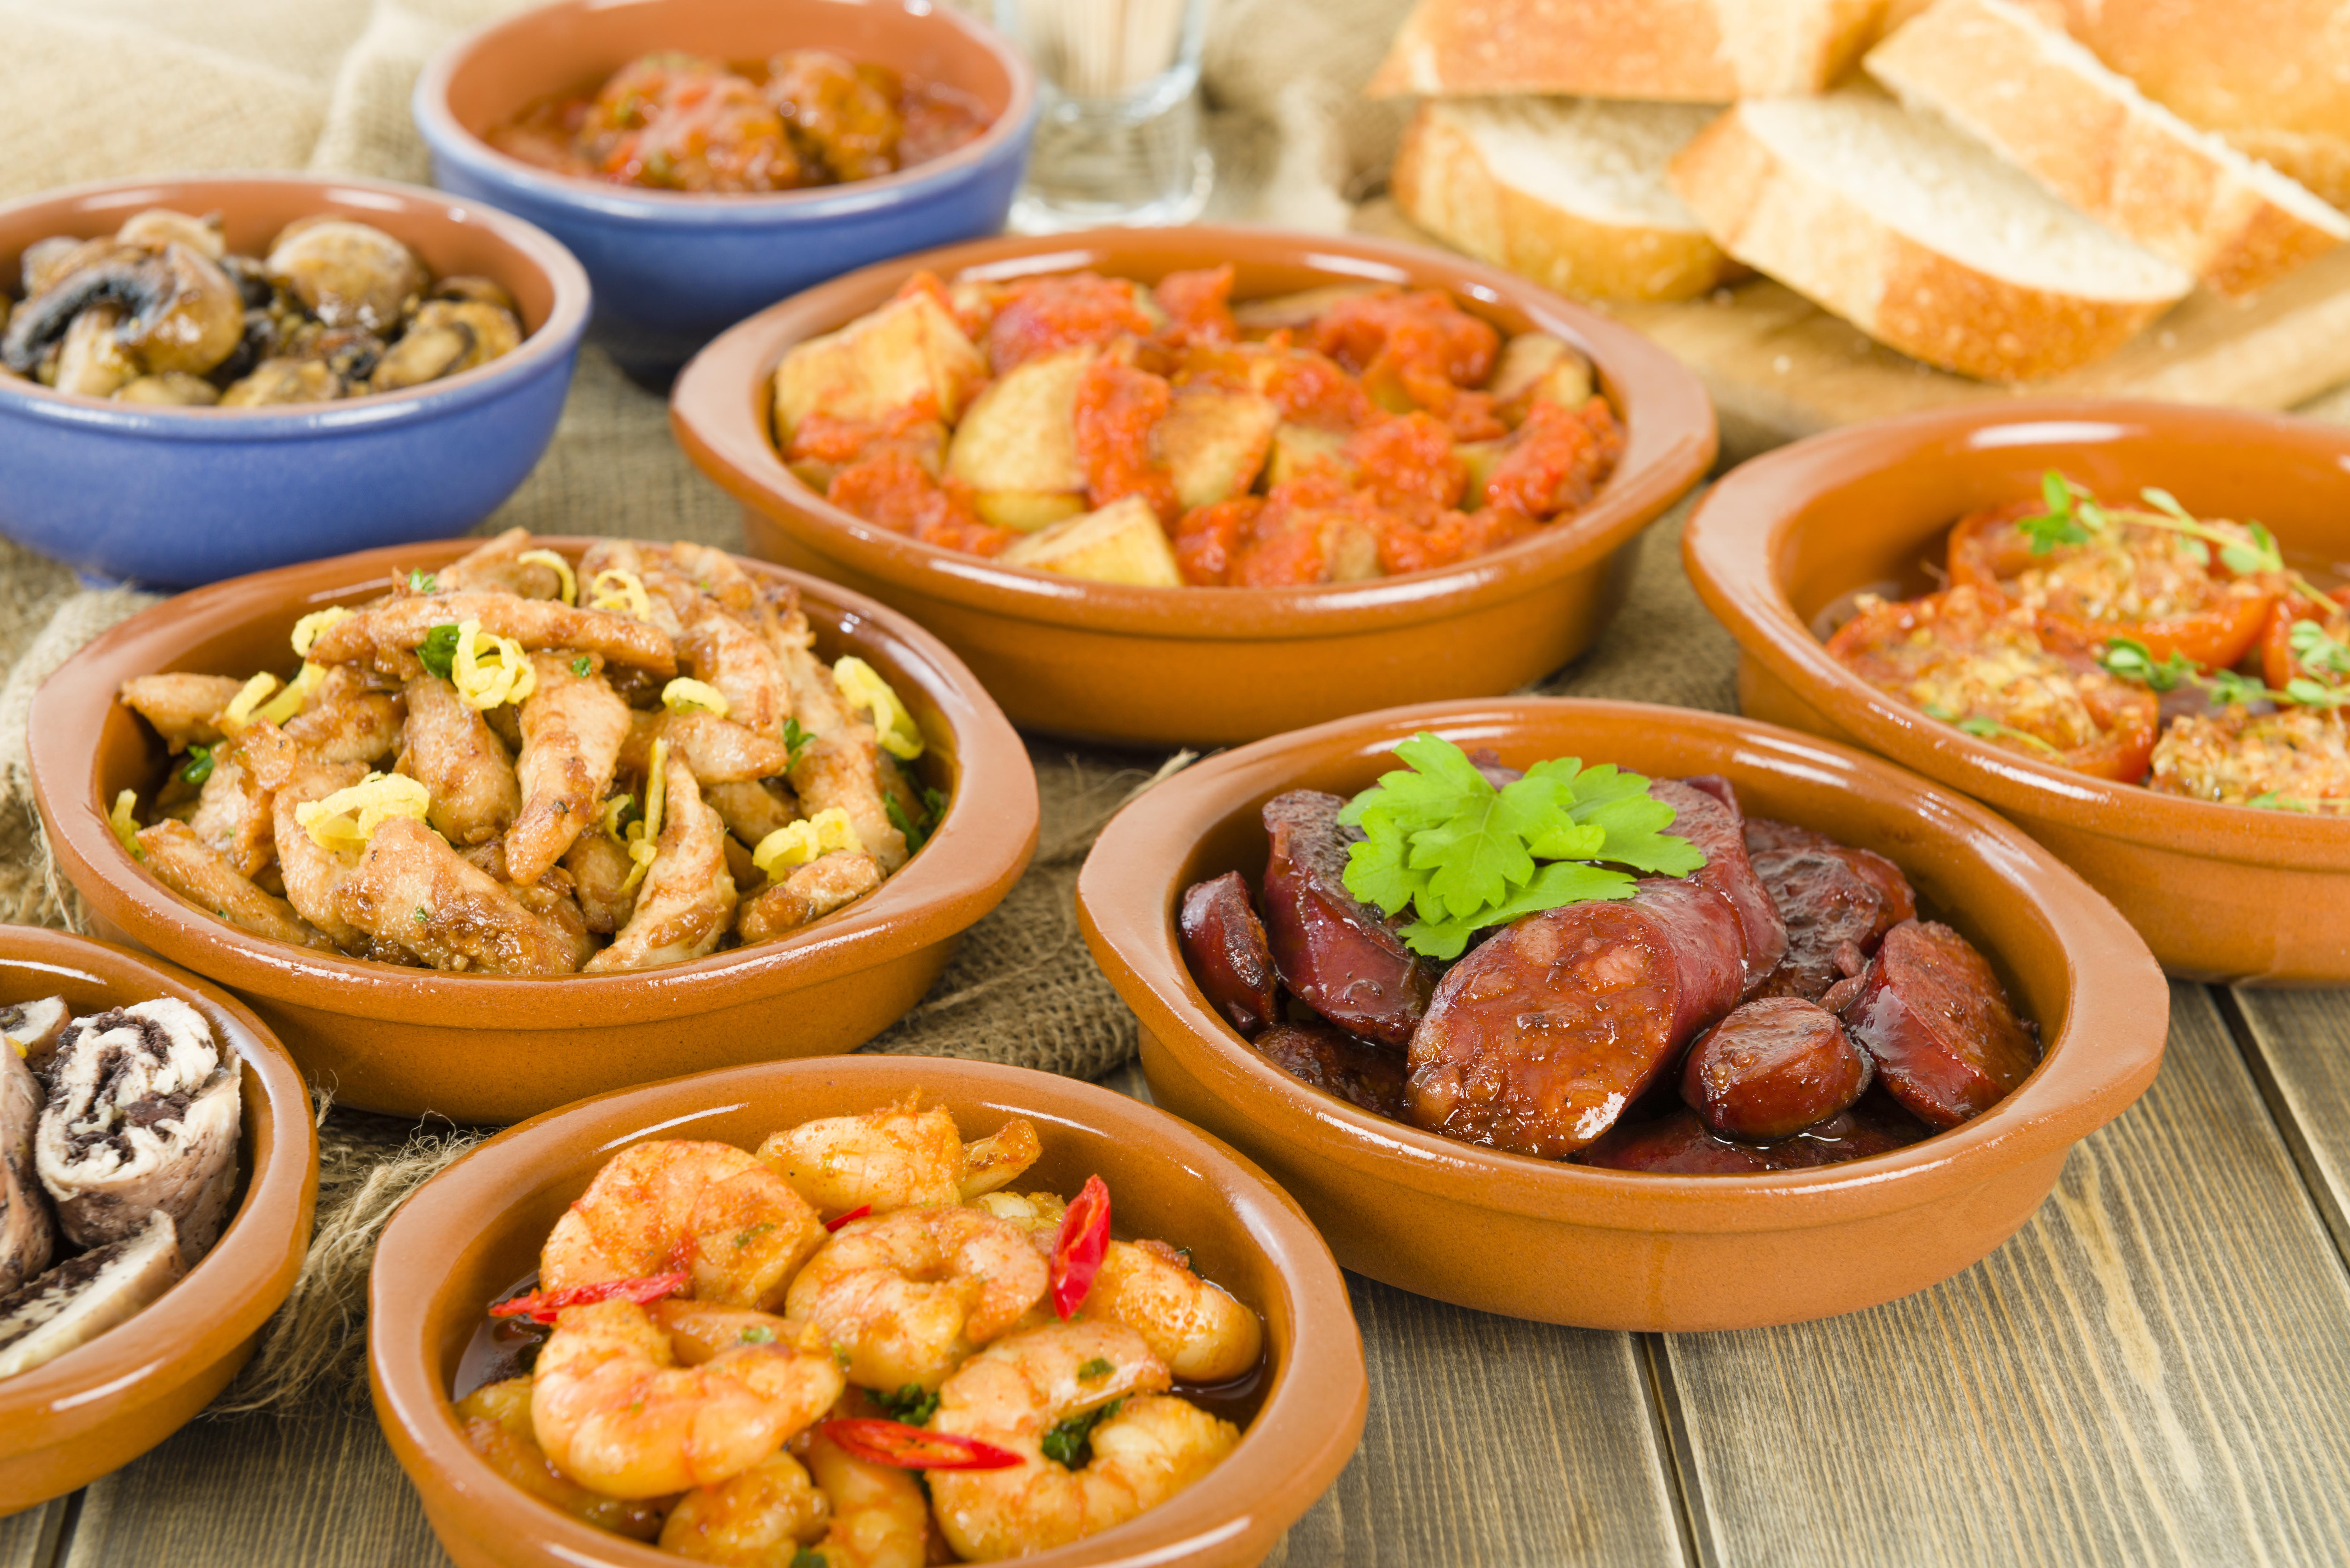 Tapas with bread